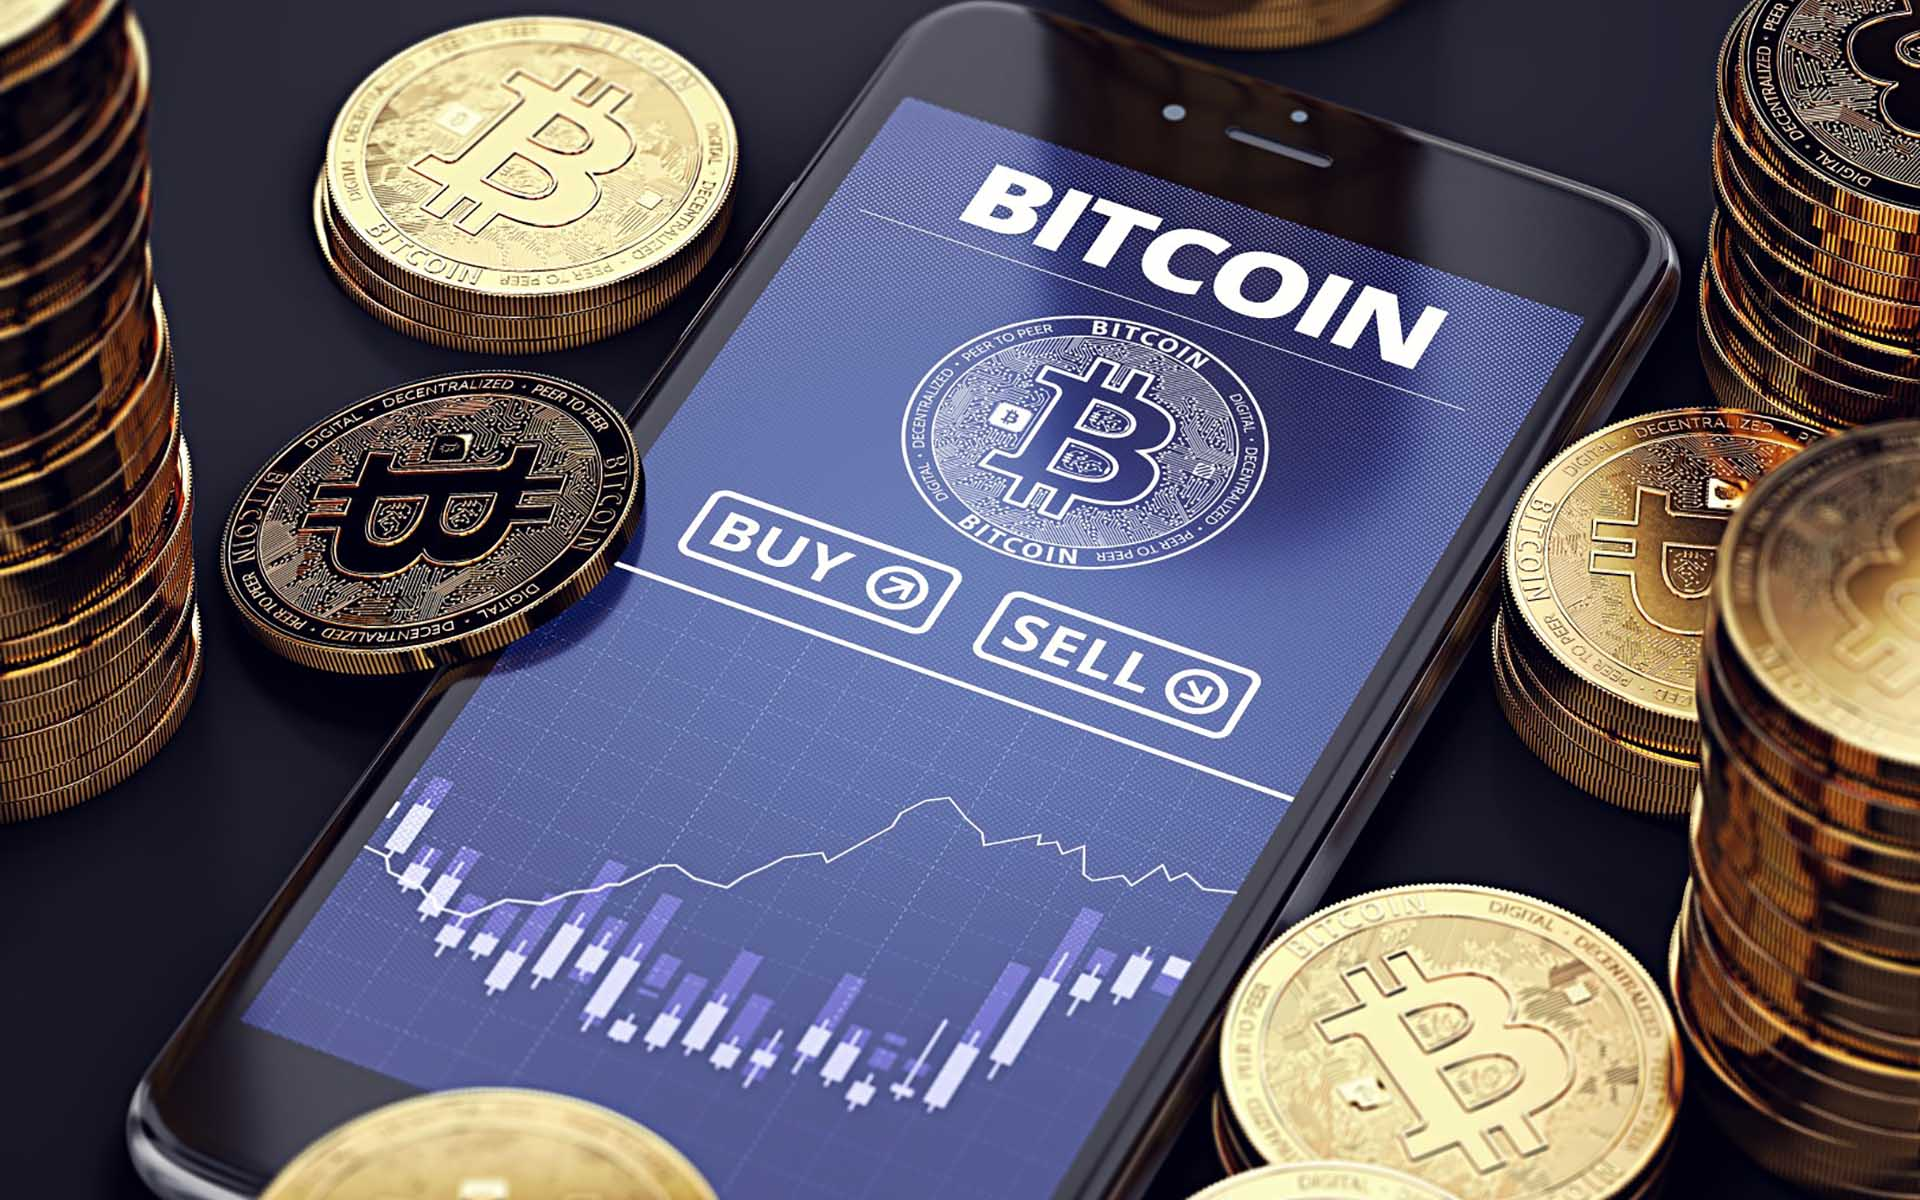 Bitcoin Market Cap >> Bitcoin Price Sets Sights On $8,000 As Investors Watch For 'Buy' Signal - Bitcoinist.com